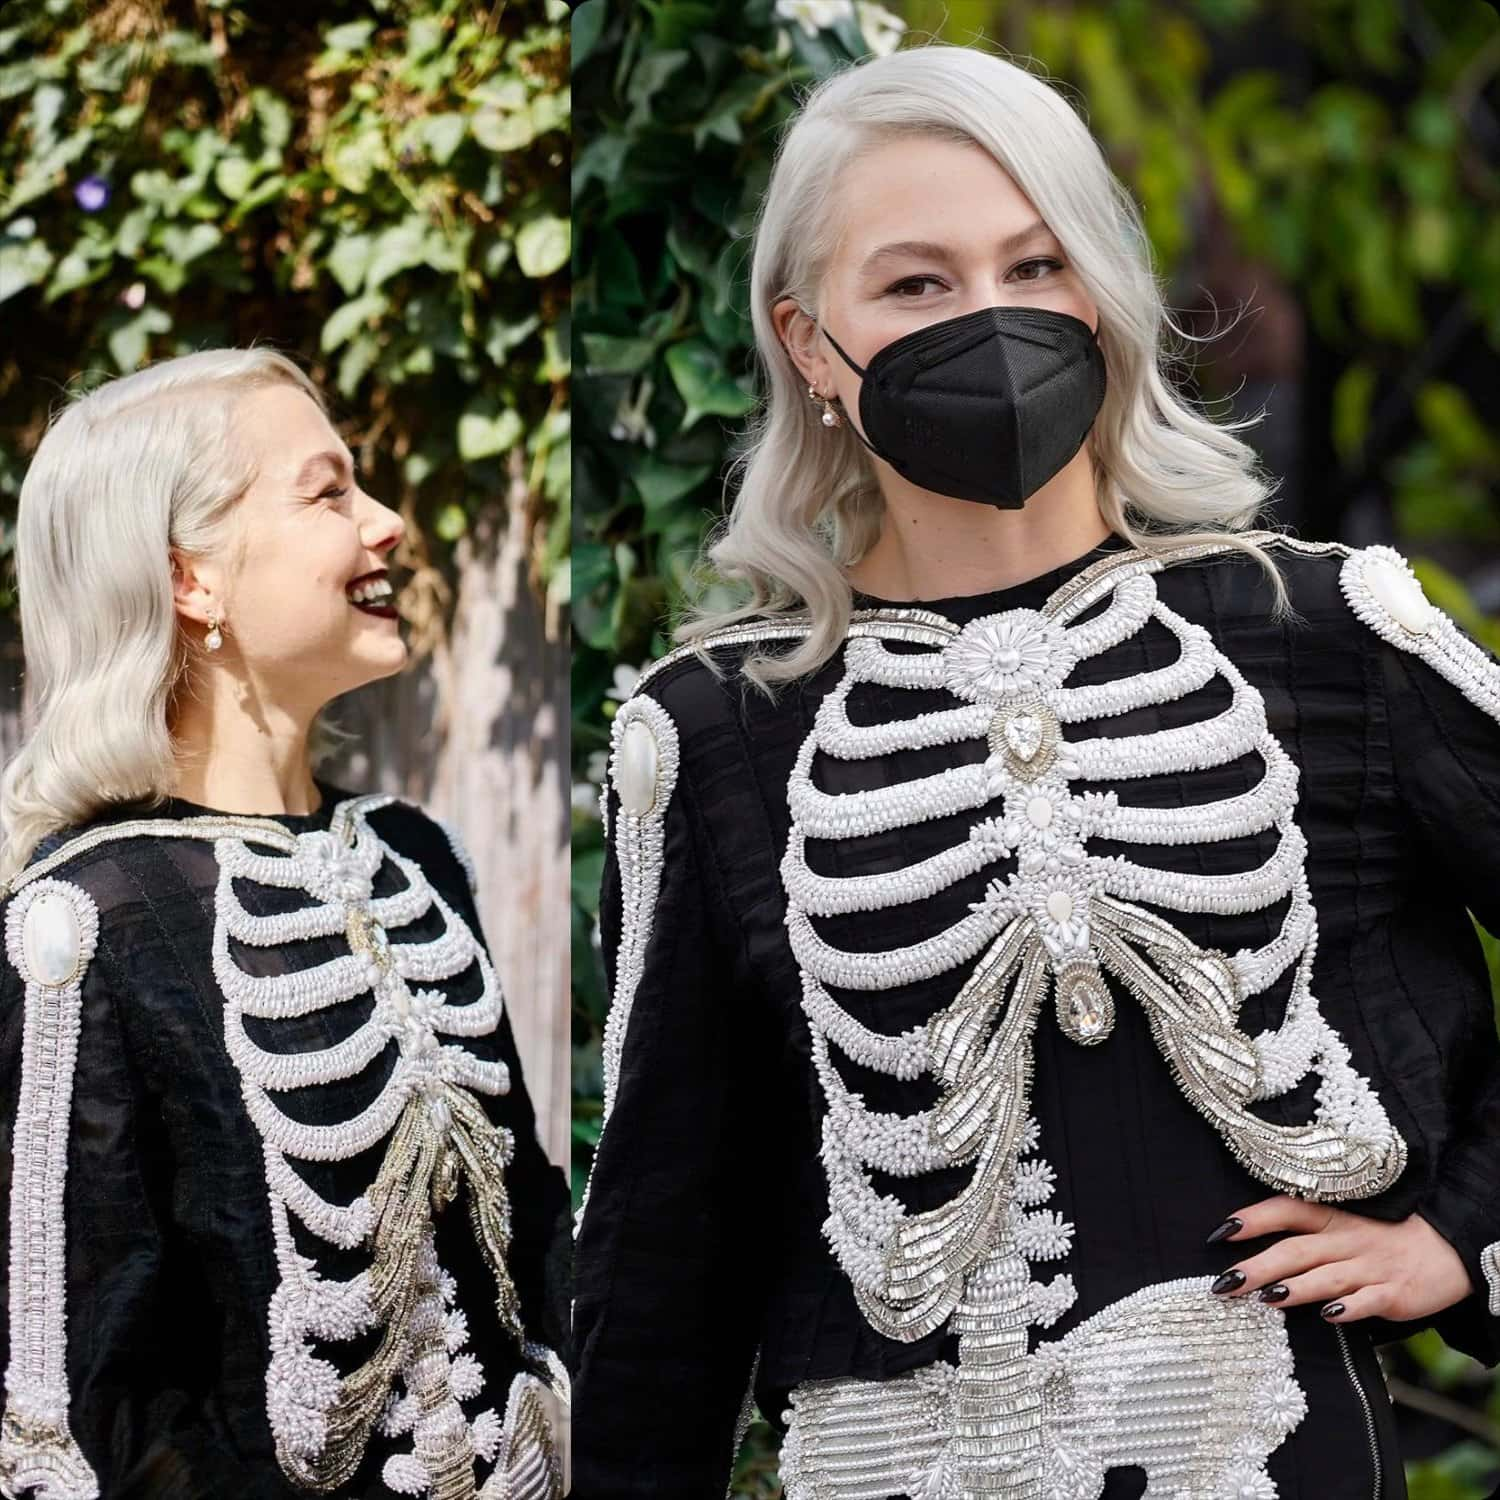 Phoebe Bridgers in Thom Browne at Grammy Awards 2021 by RUNWAY MAGAZINE